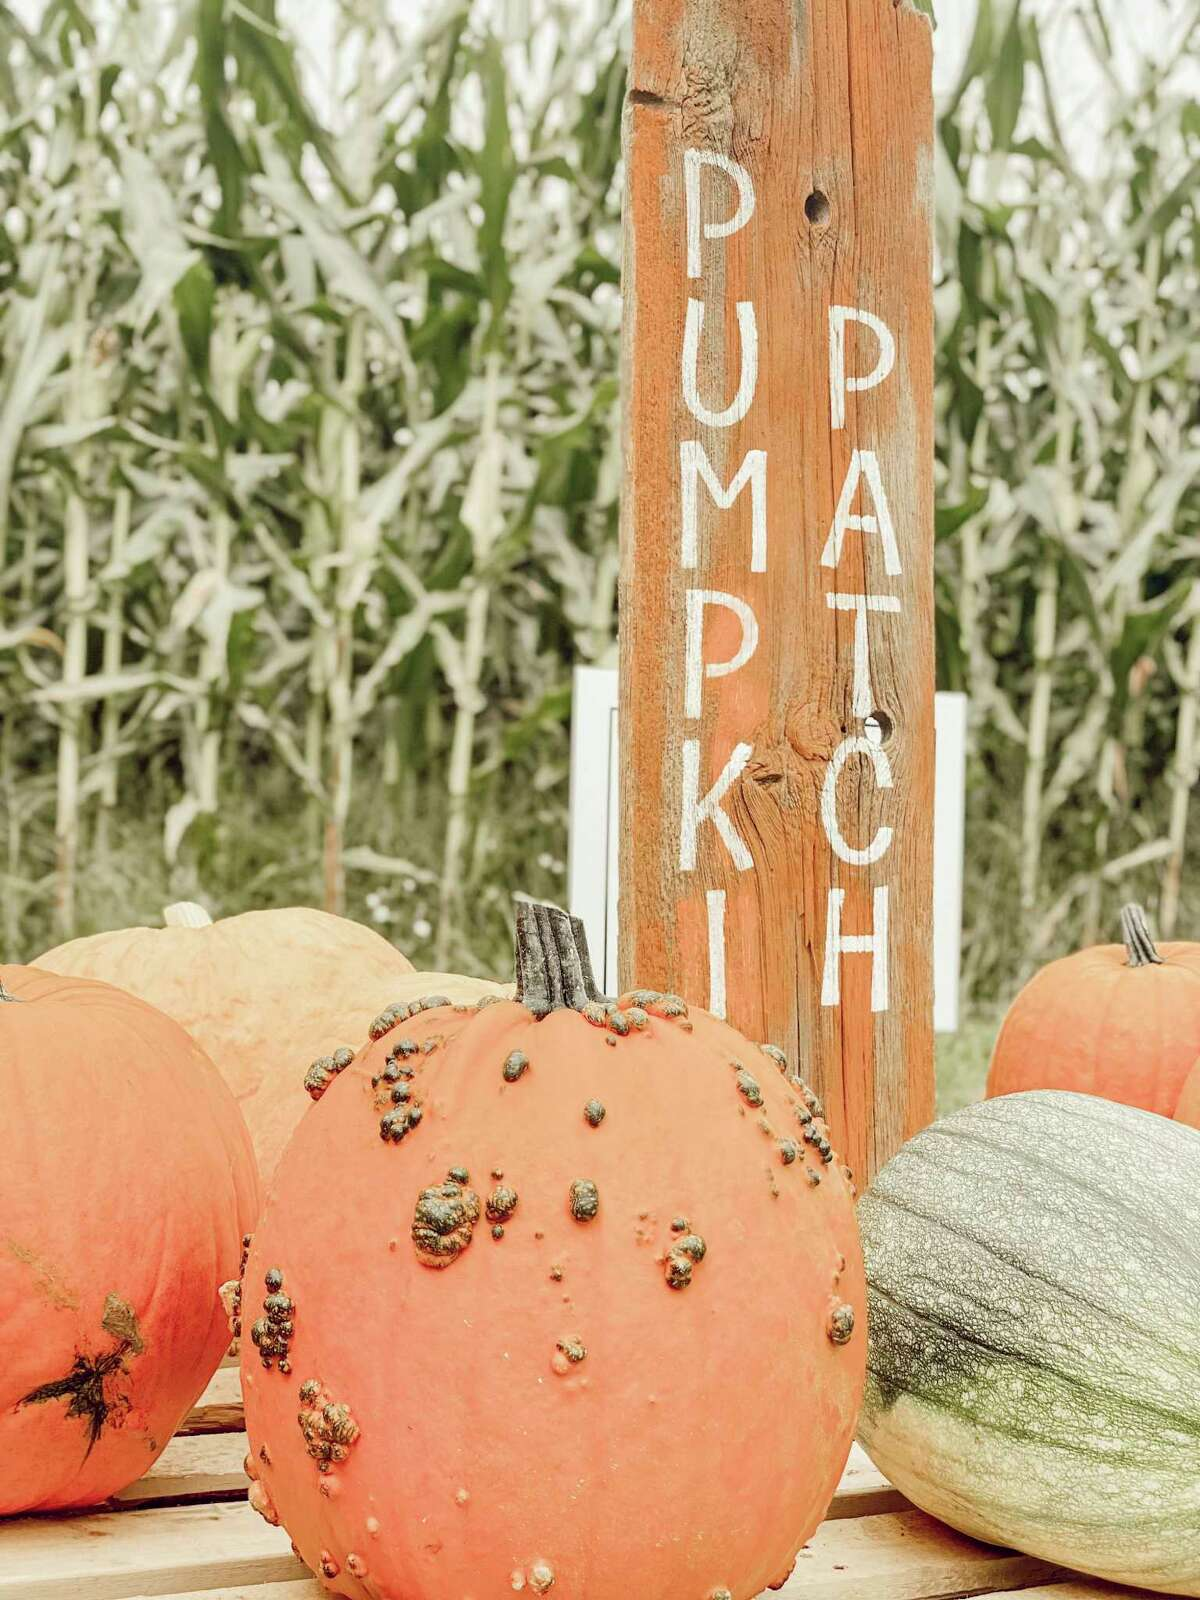 In addition to the corn maze at Oxford Farm, the pumpkin patch has also quickly become a favorite among patrons. (Photo courtesy/Kendra Kissane)